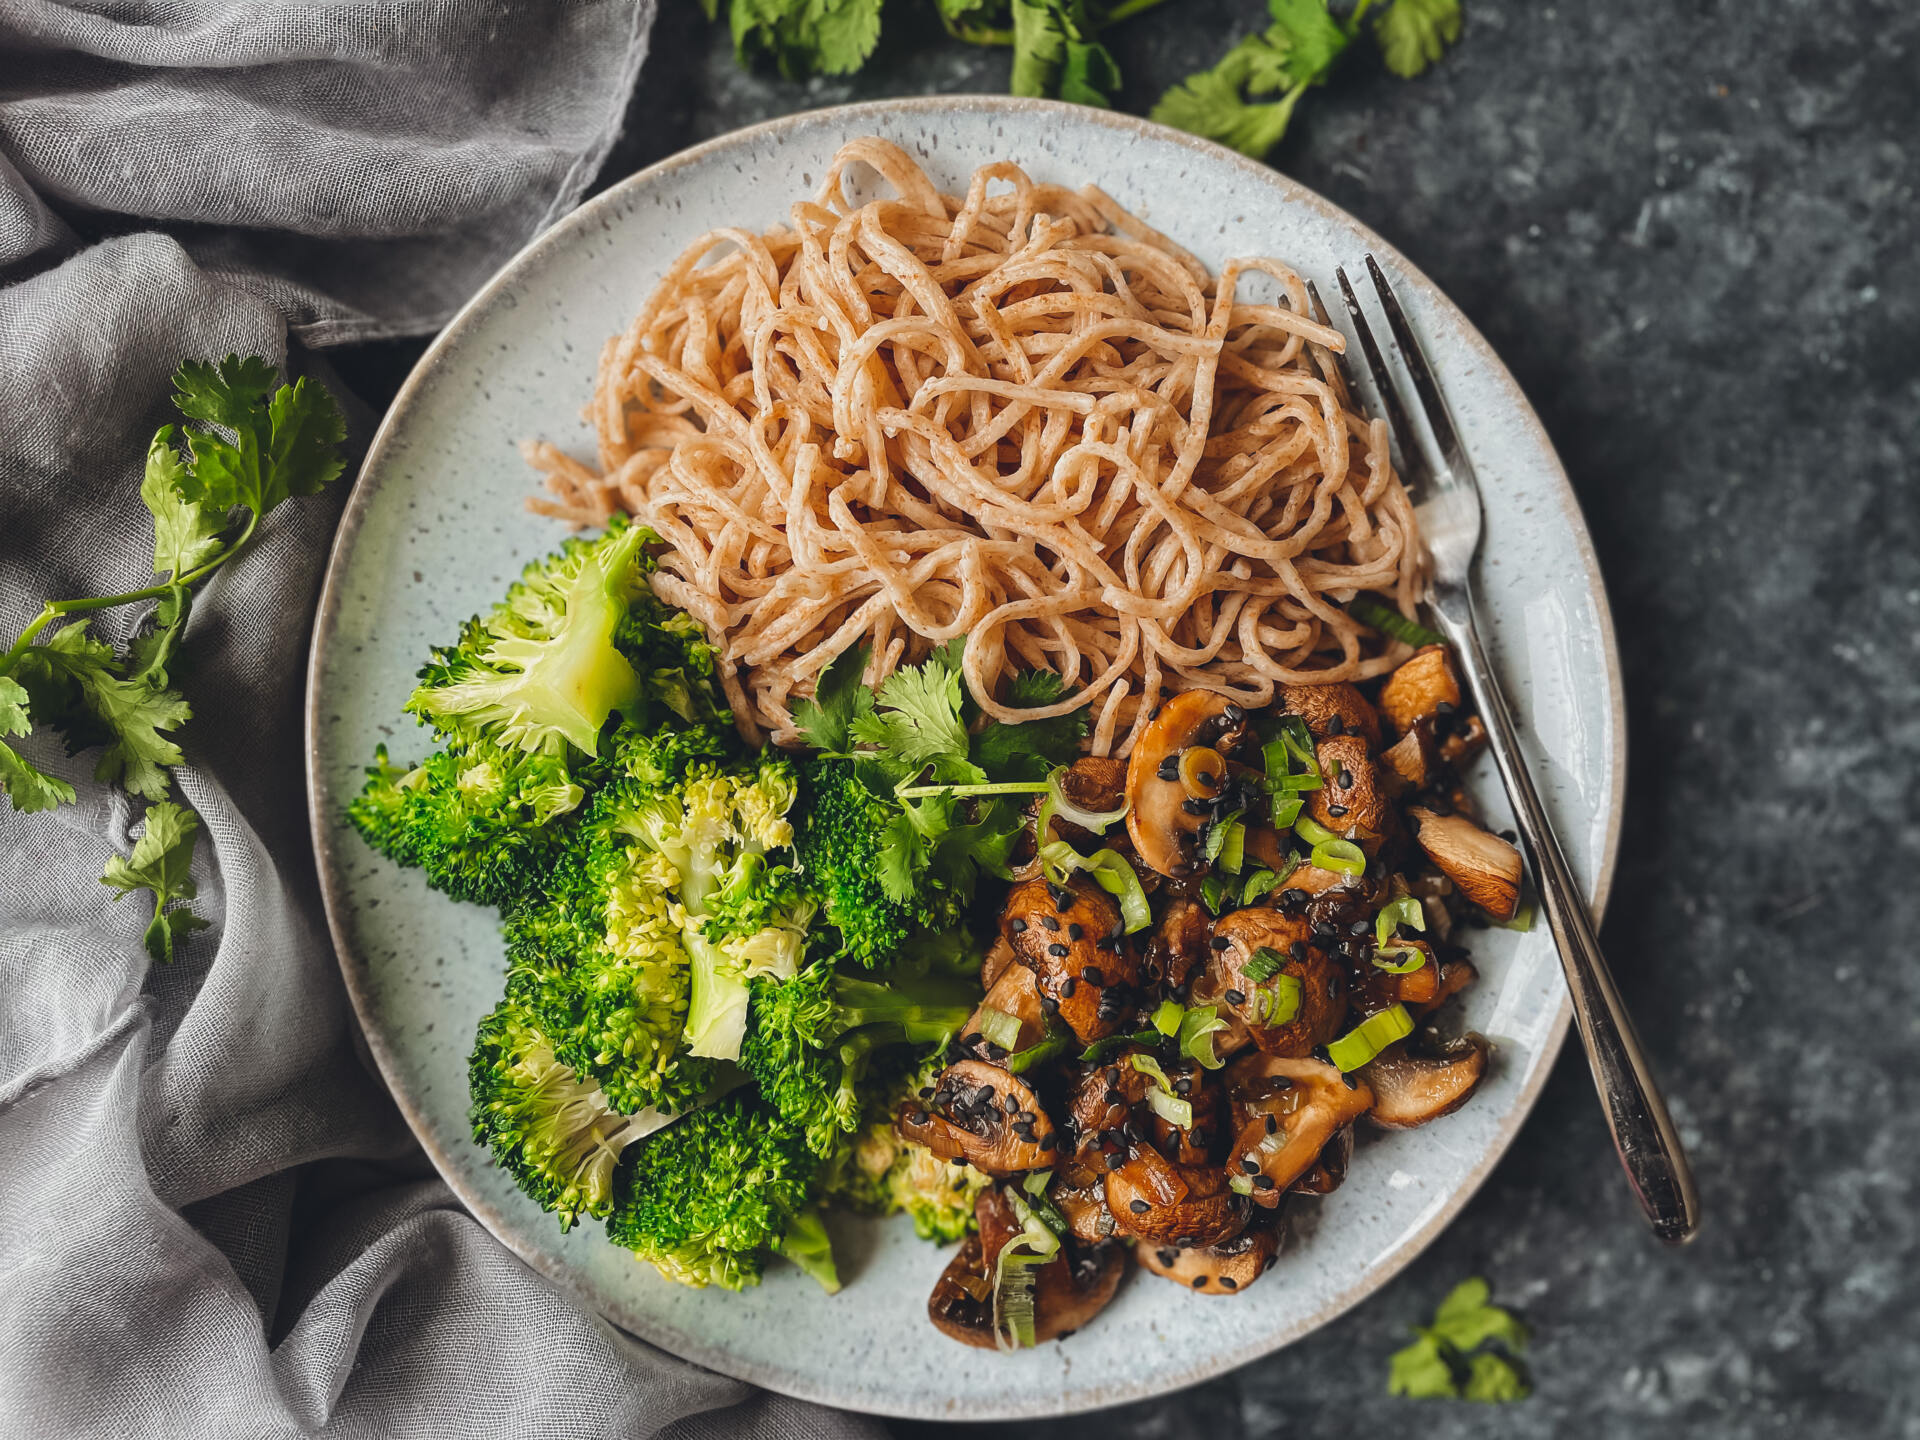 Teriyaki Mushrooms with Wholewheat Noodles